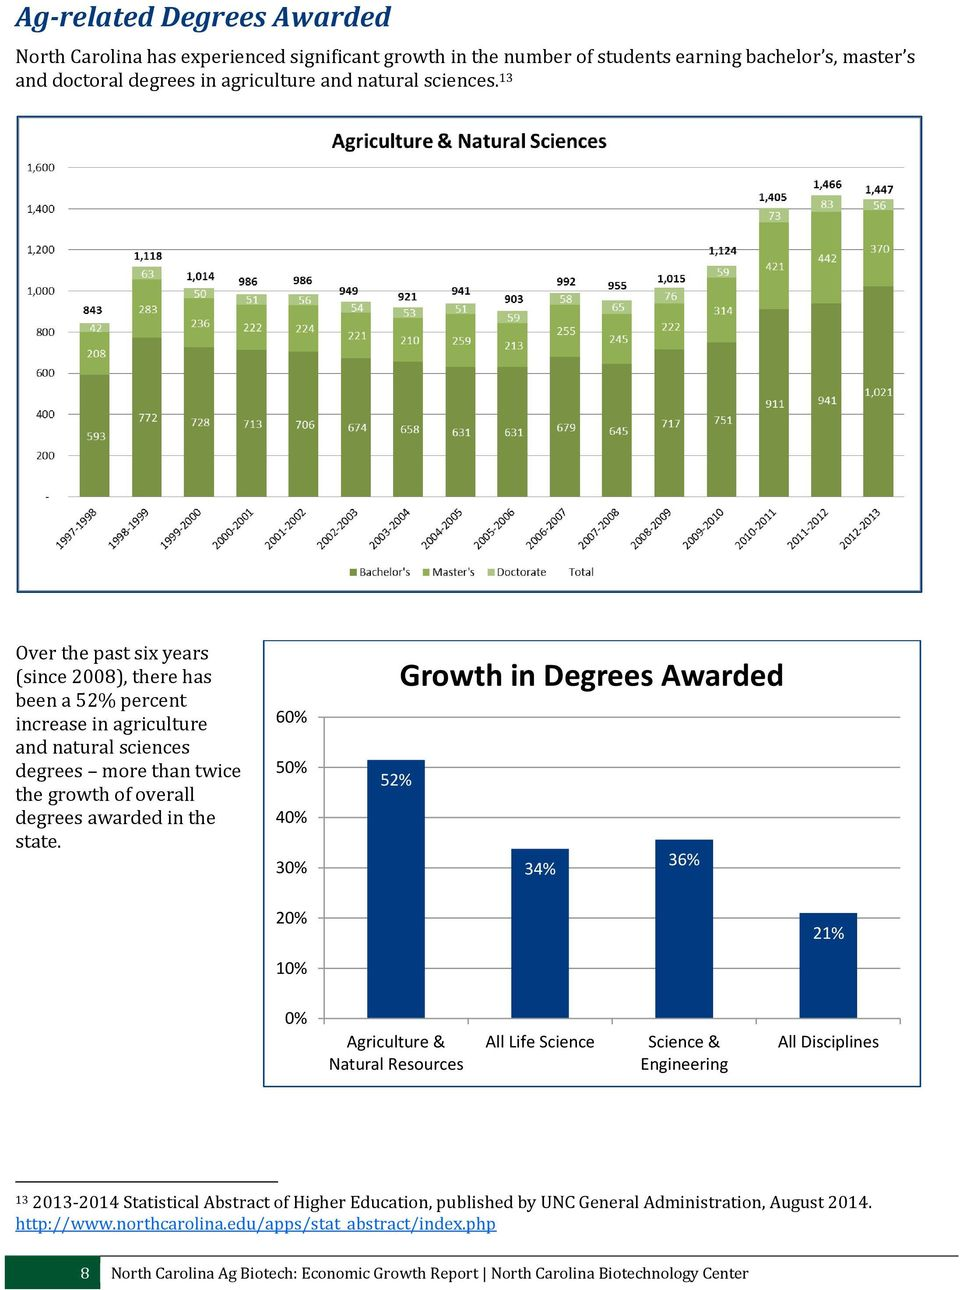 60% 50% 40% 30% Growth in Degrees Awarded 52% 34% 36% 20% 21% 10% 0% Agriculture & Natural Resources All Life Science Science & Engineering All Disciplines 13 2013-2014 Statistical Abstract of